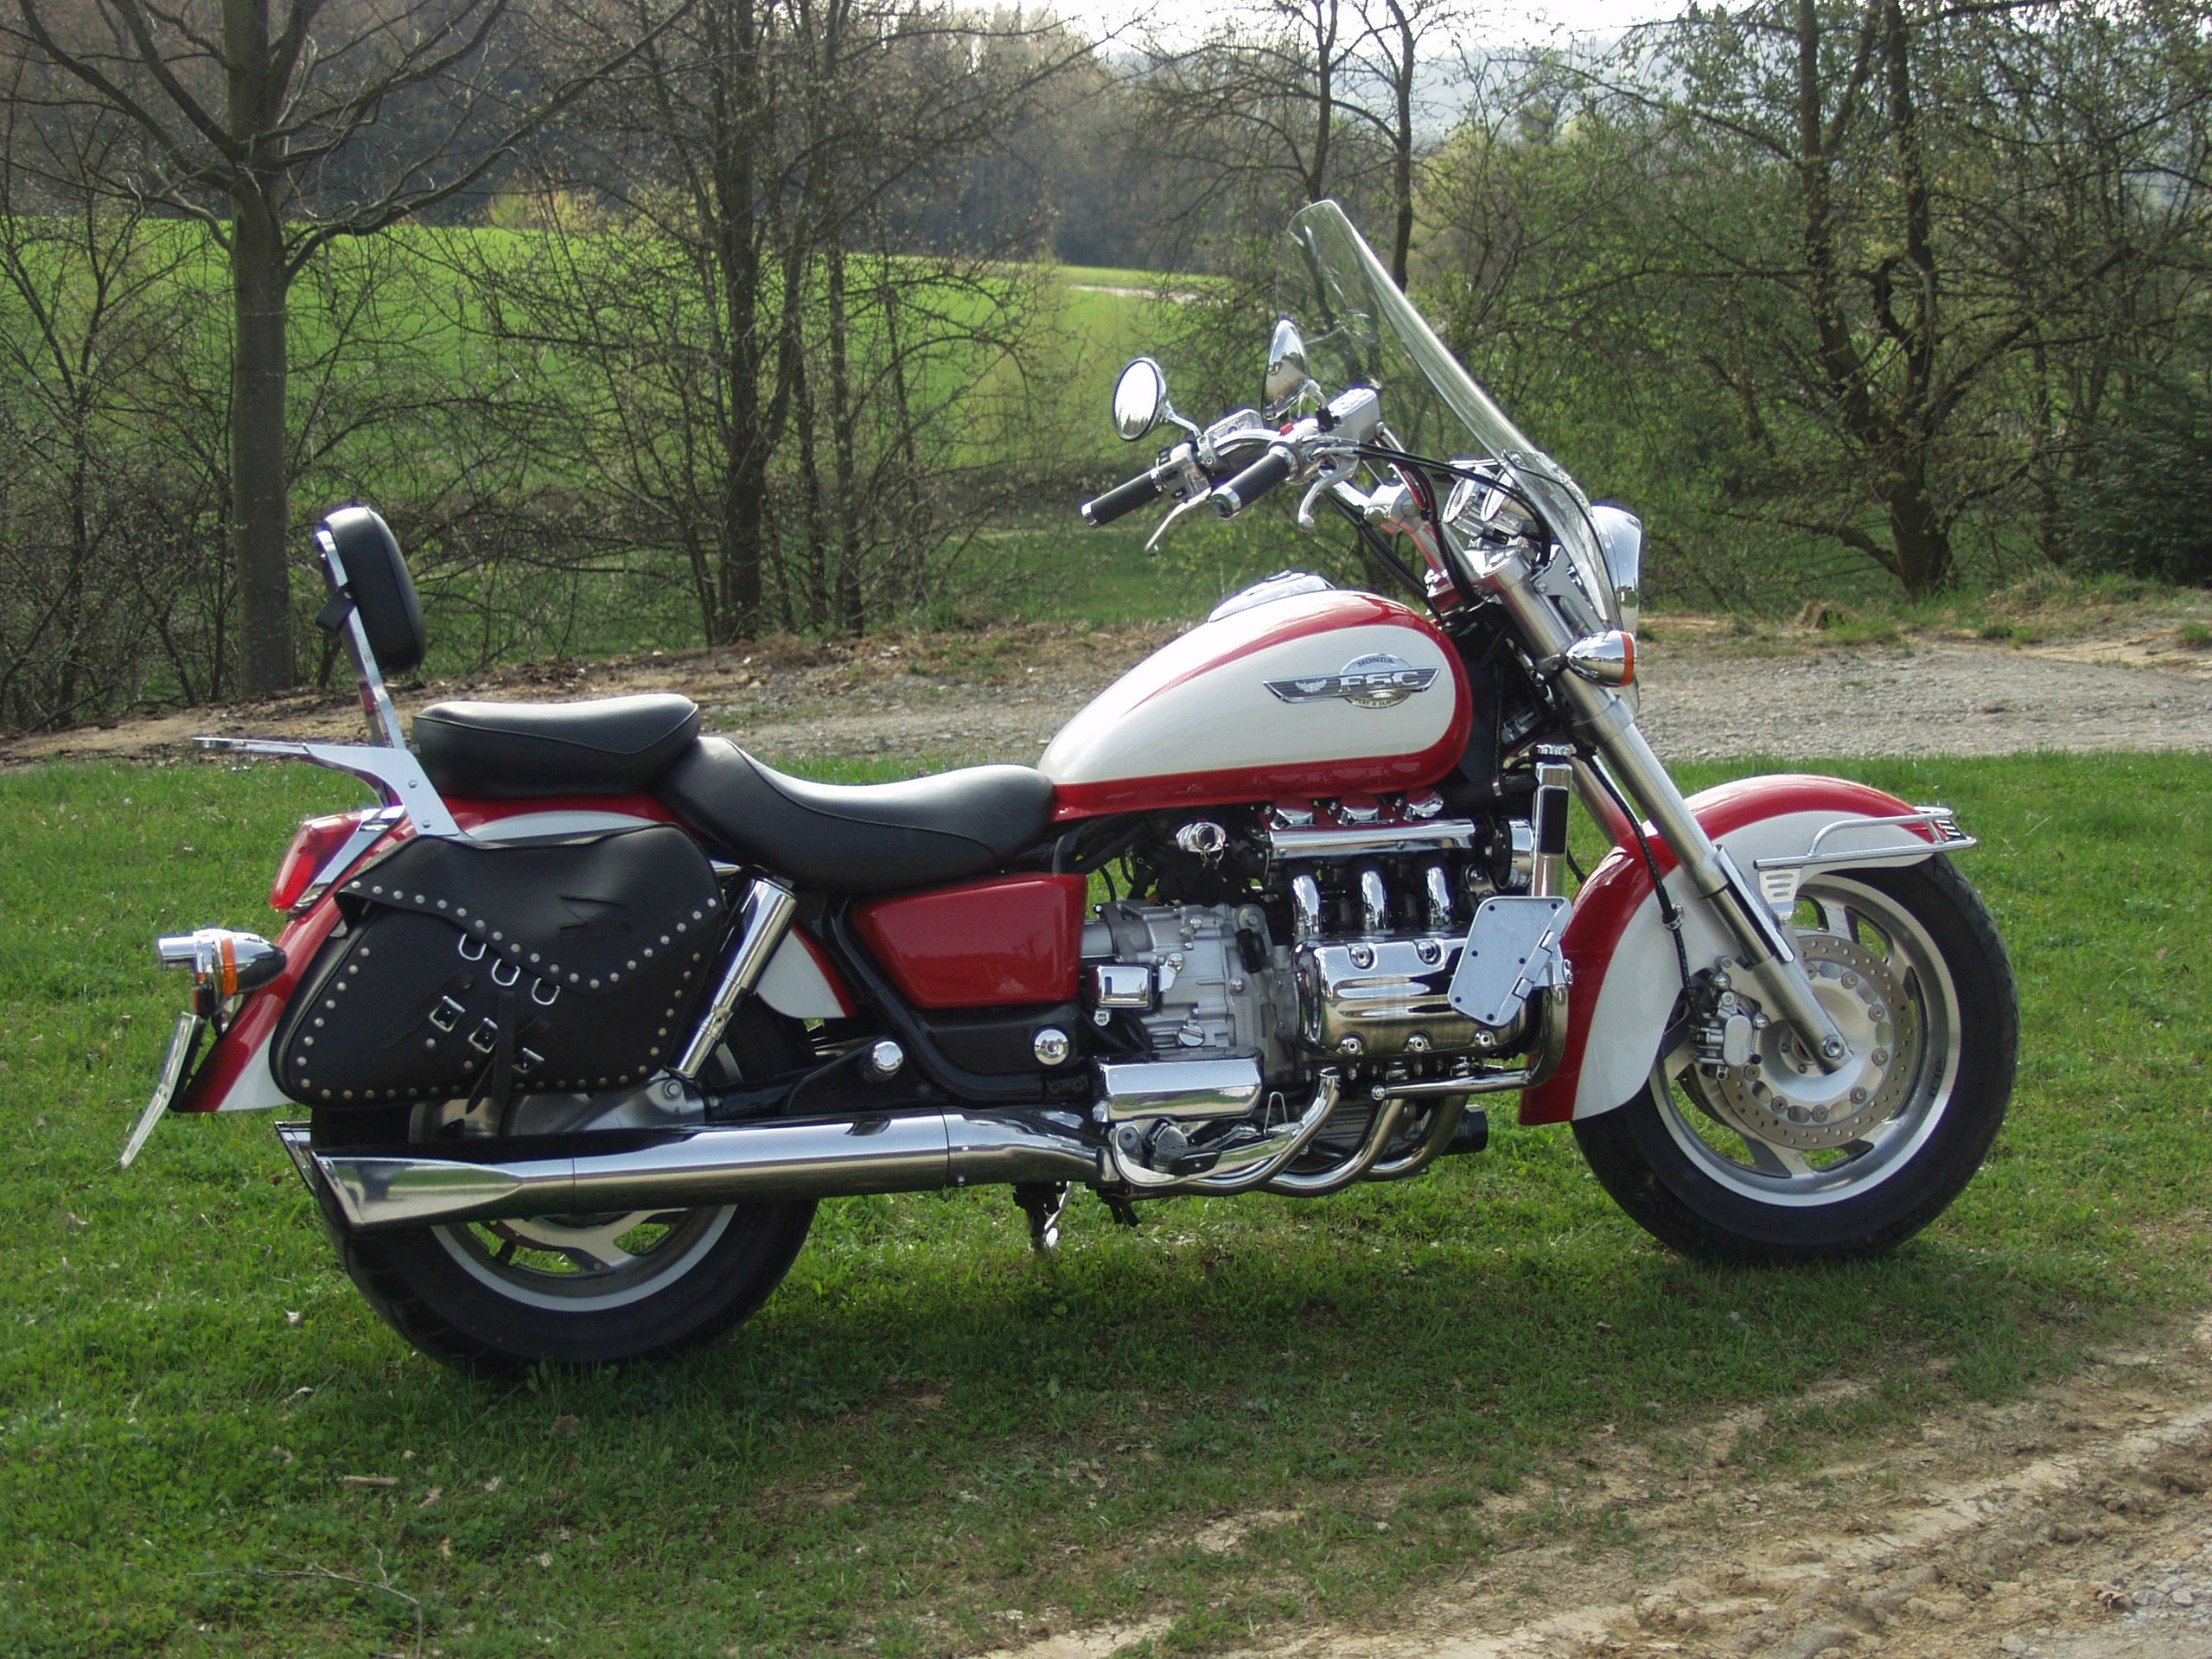 Honda Valkyrie The Complete Information And Online Sale With Free All New Cb 150r Streetfire Racing Red Kendal Shipping Order Buy Now For Lowest Price In Best Store